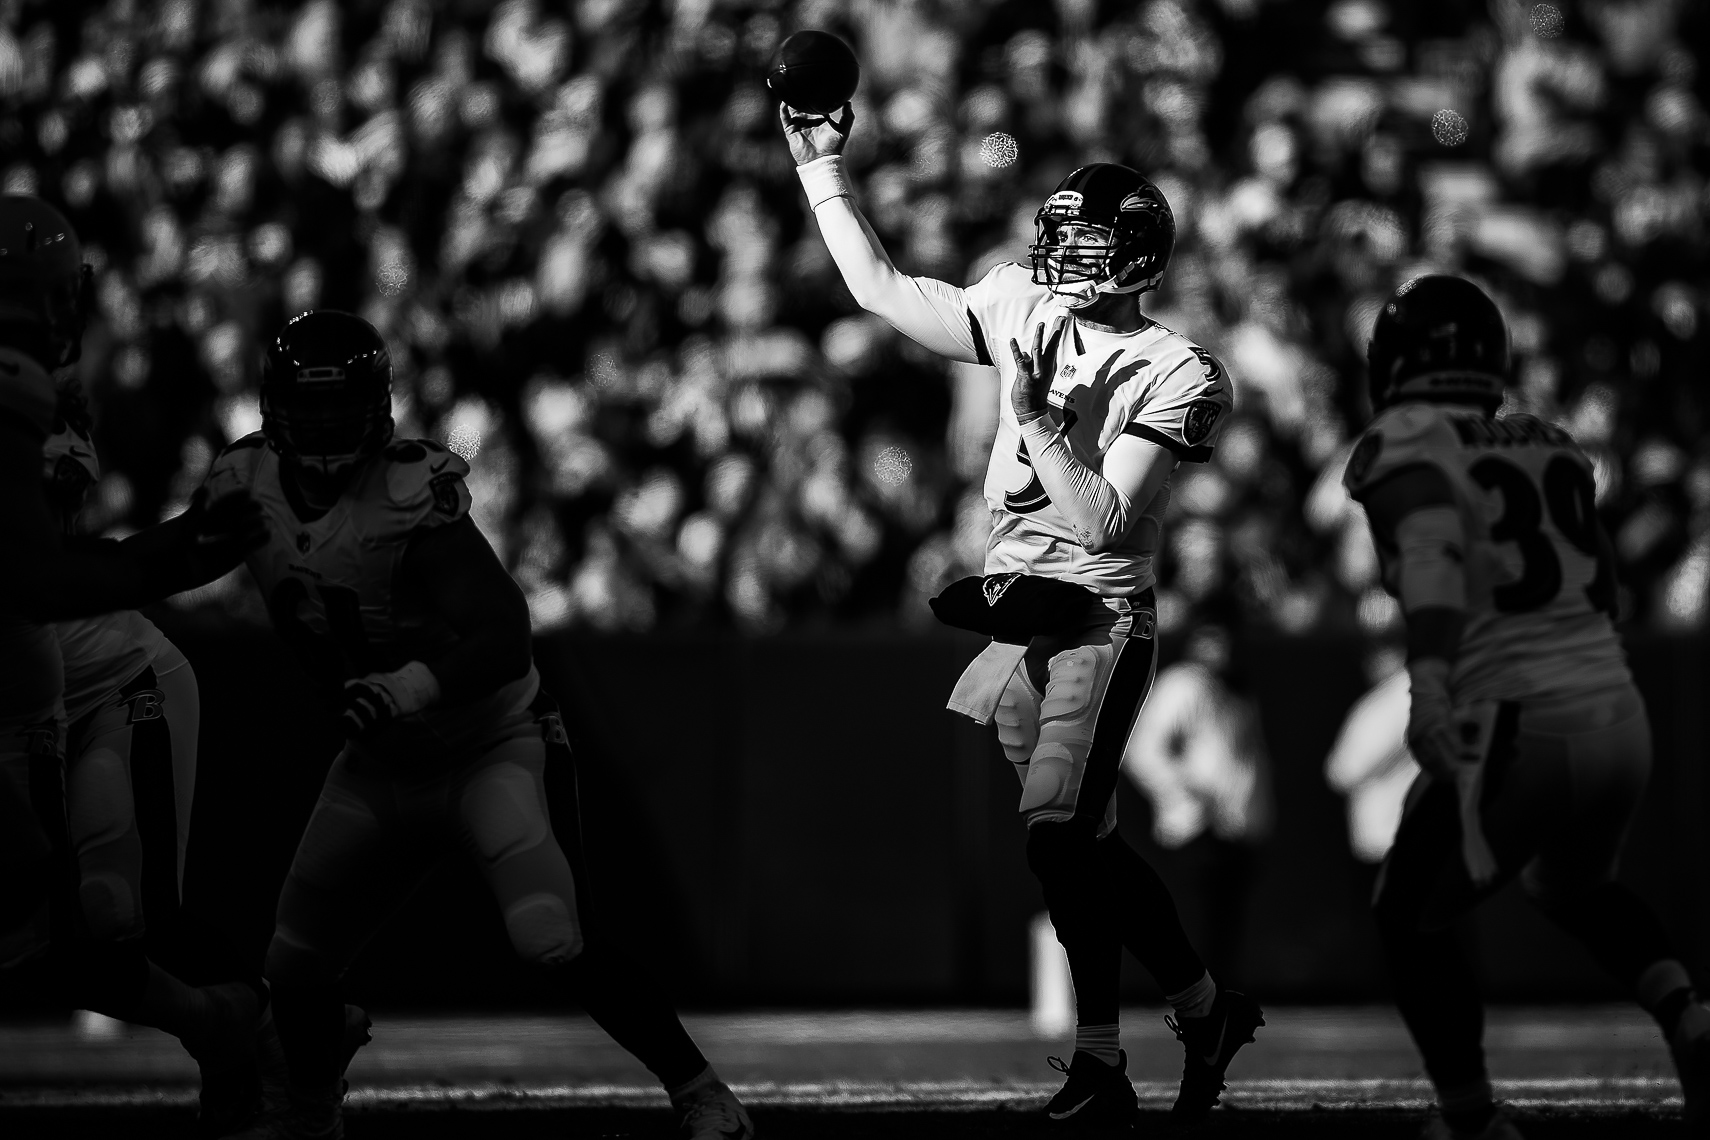 ravens11  NFL Baltimore Ravens photos NFL behind the scenes documentary sports photographer photo of quarterback Joe Flacco Super Bowl MVP